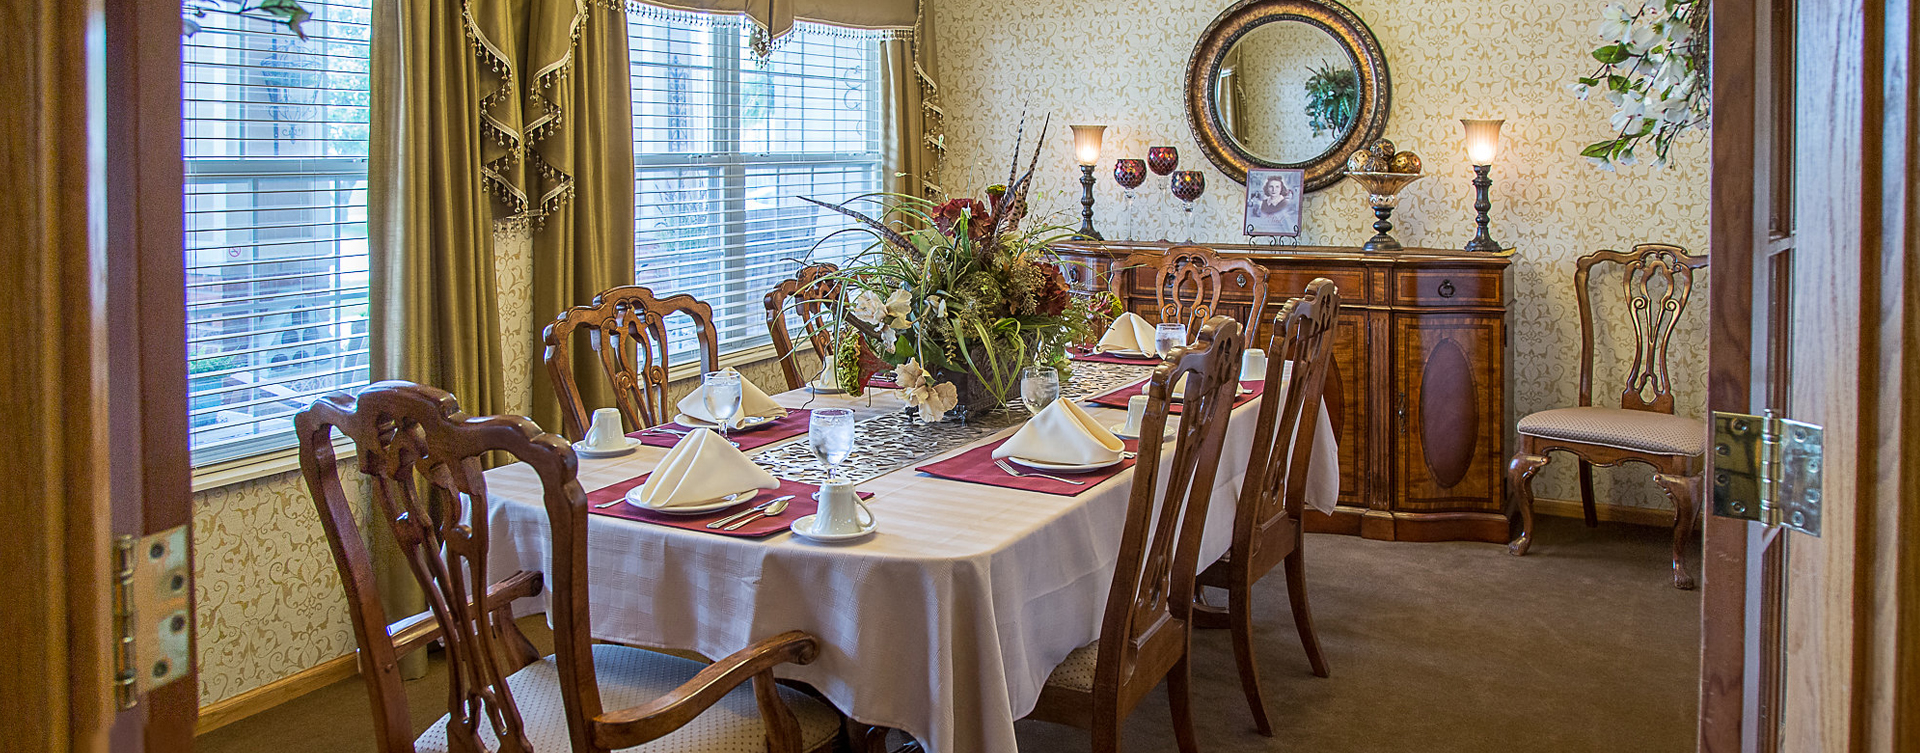 Food is best when shared with family and friends in the private dining room at Bickford of Burlington